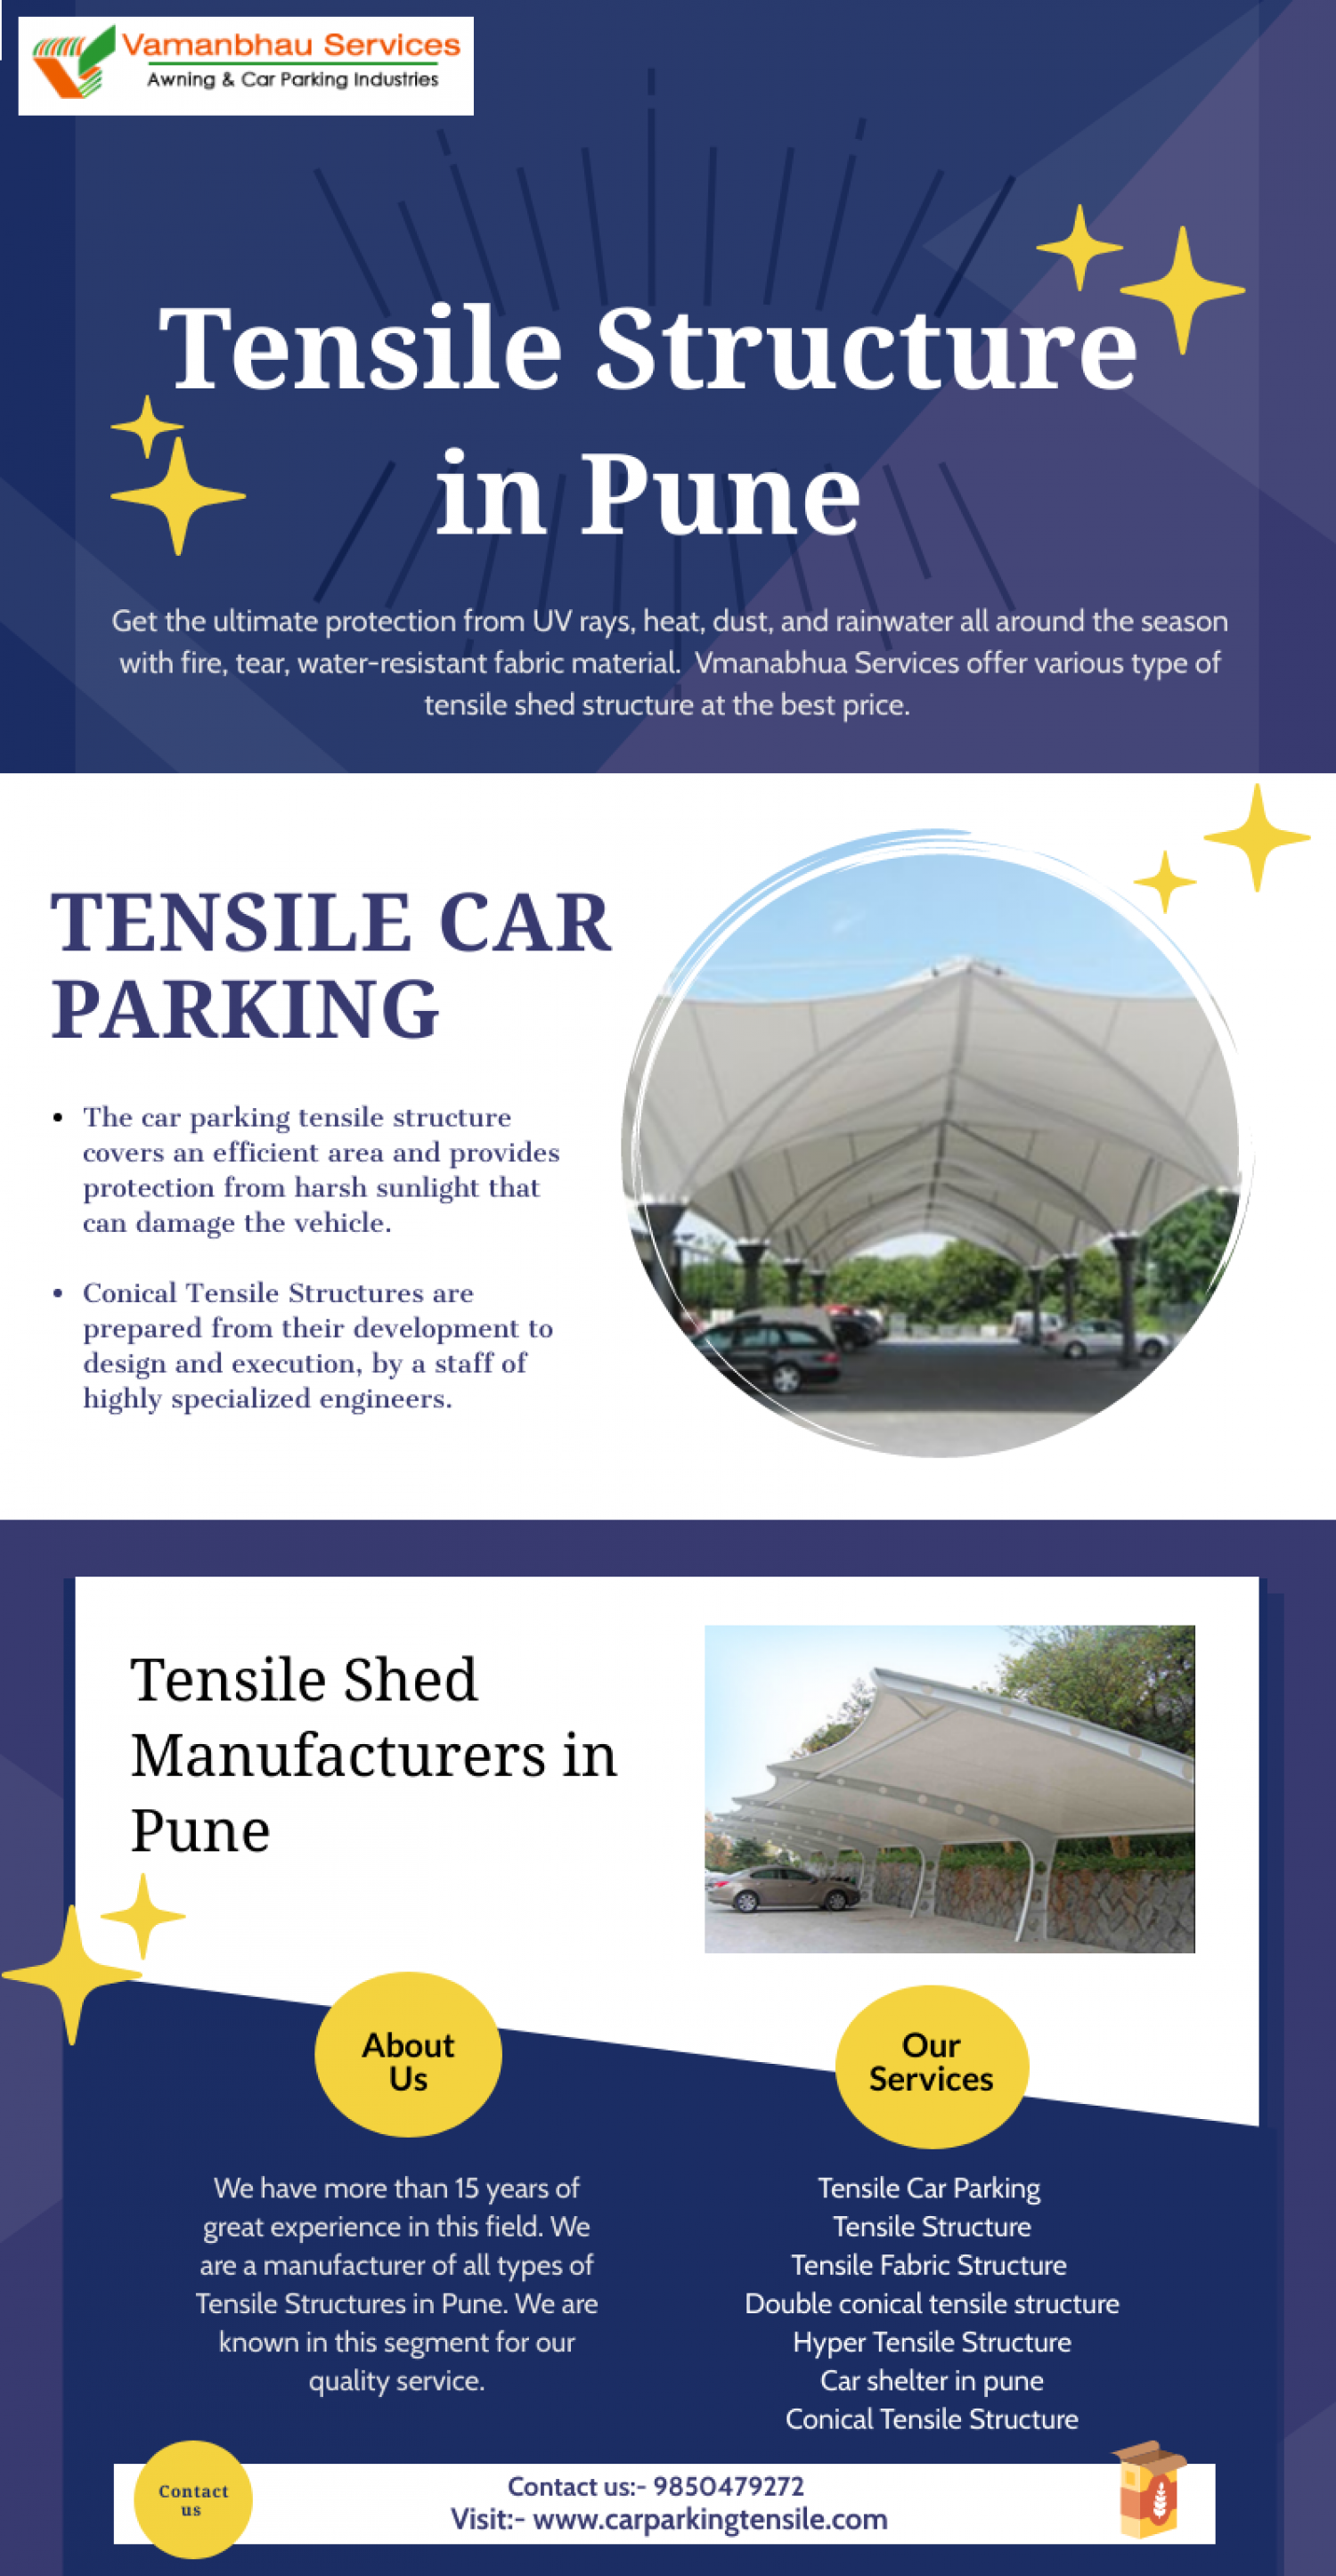 Tensile Structure in Pune Infographic